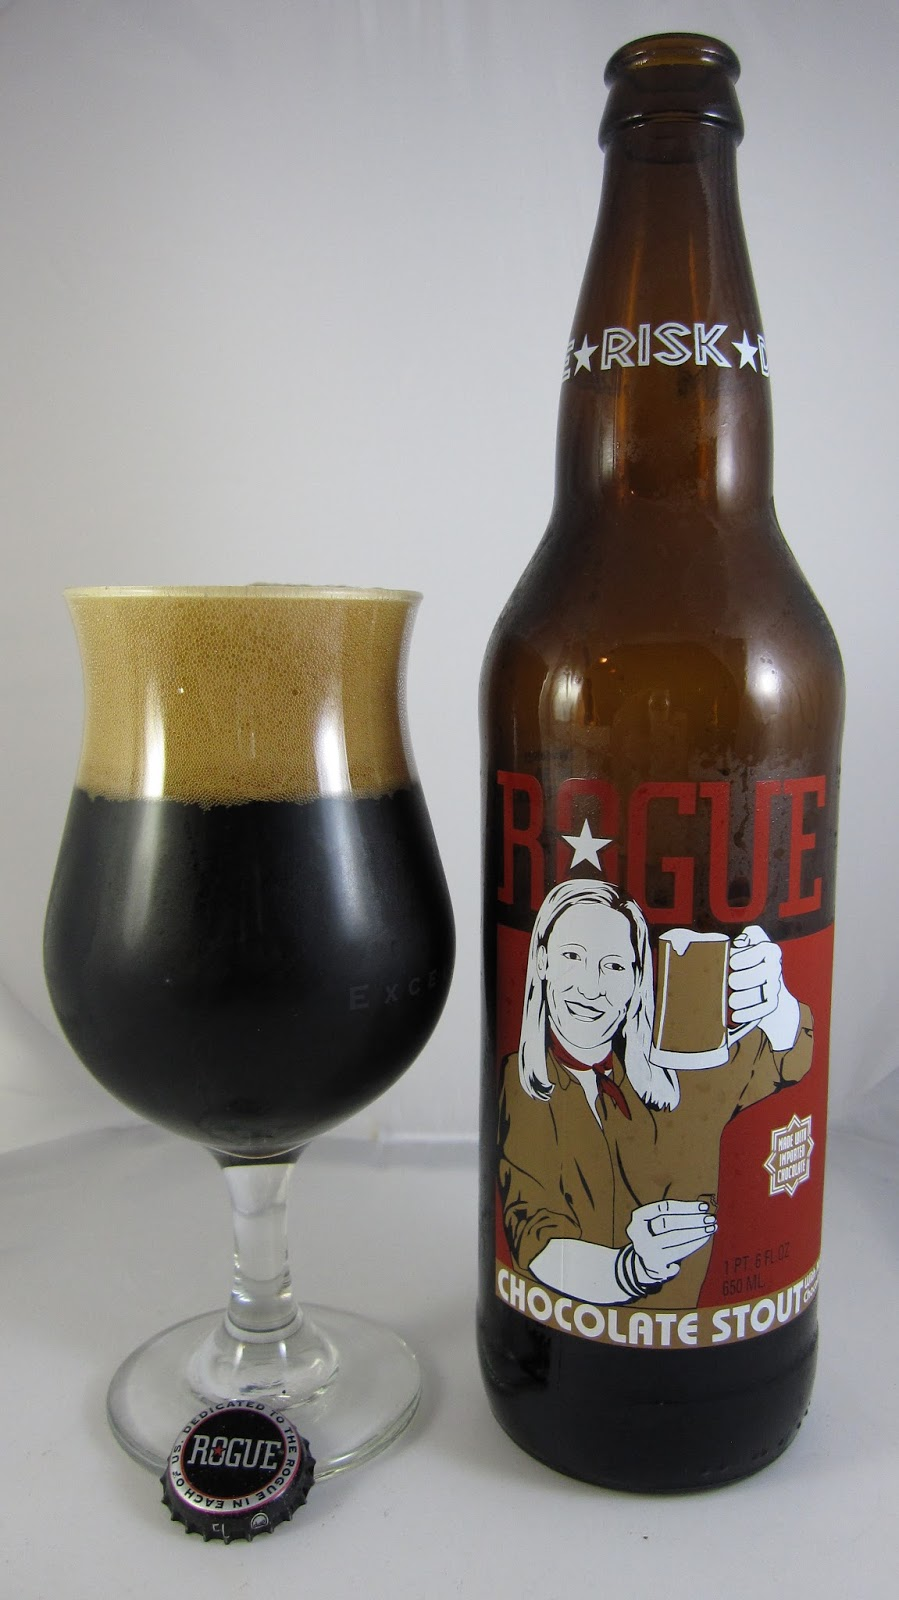 Chad'z Beer Reviews: Rogue Chocolate Stout (2013 re-review)